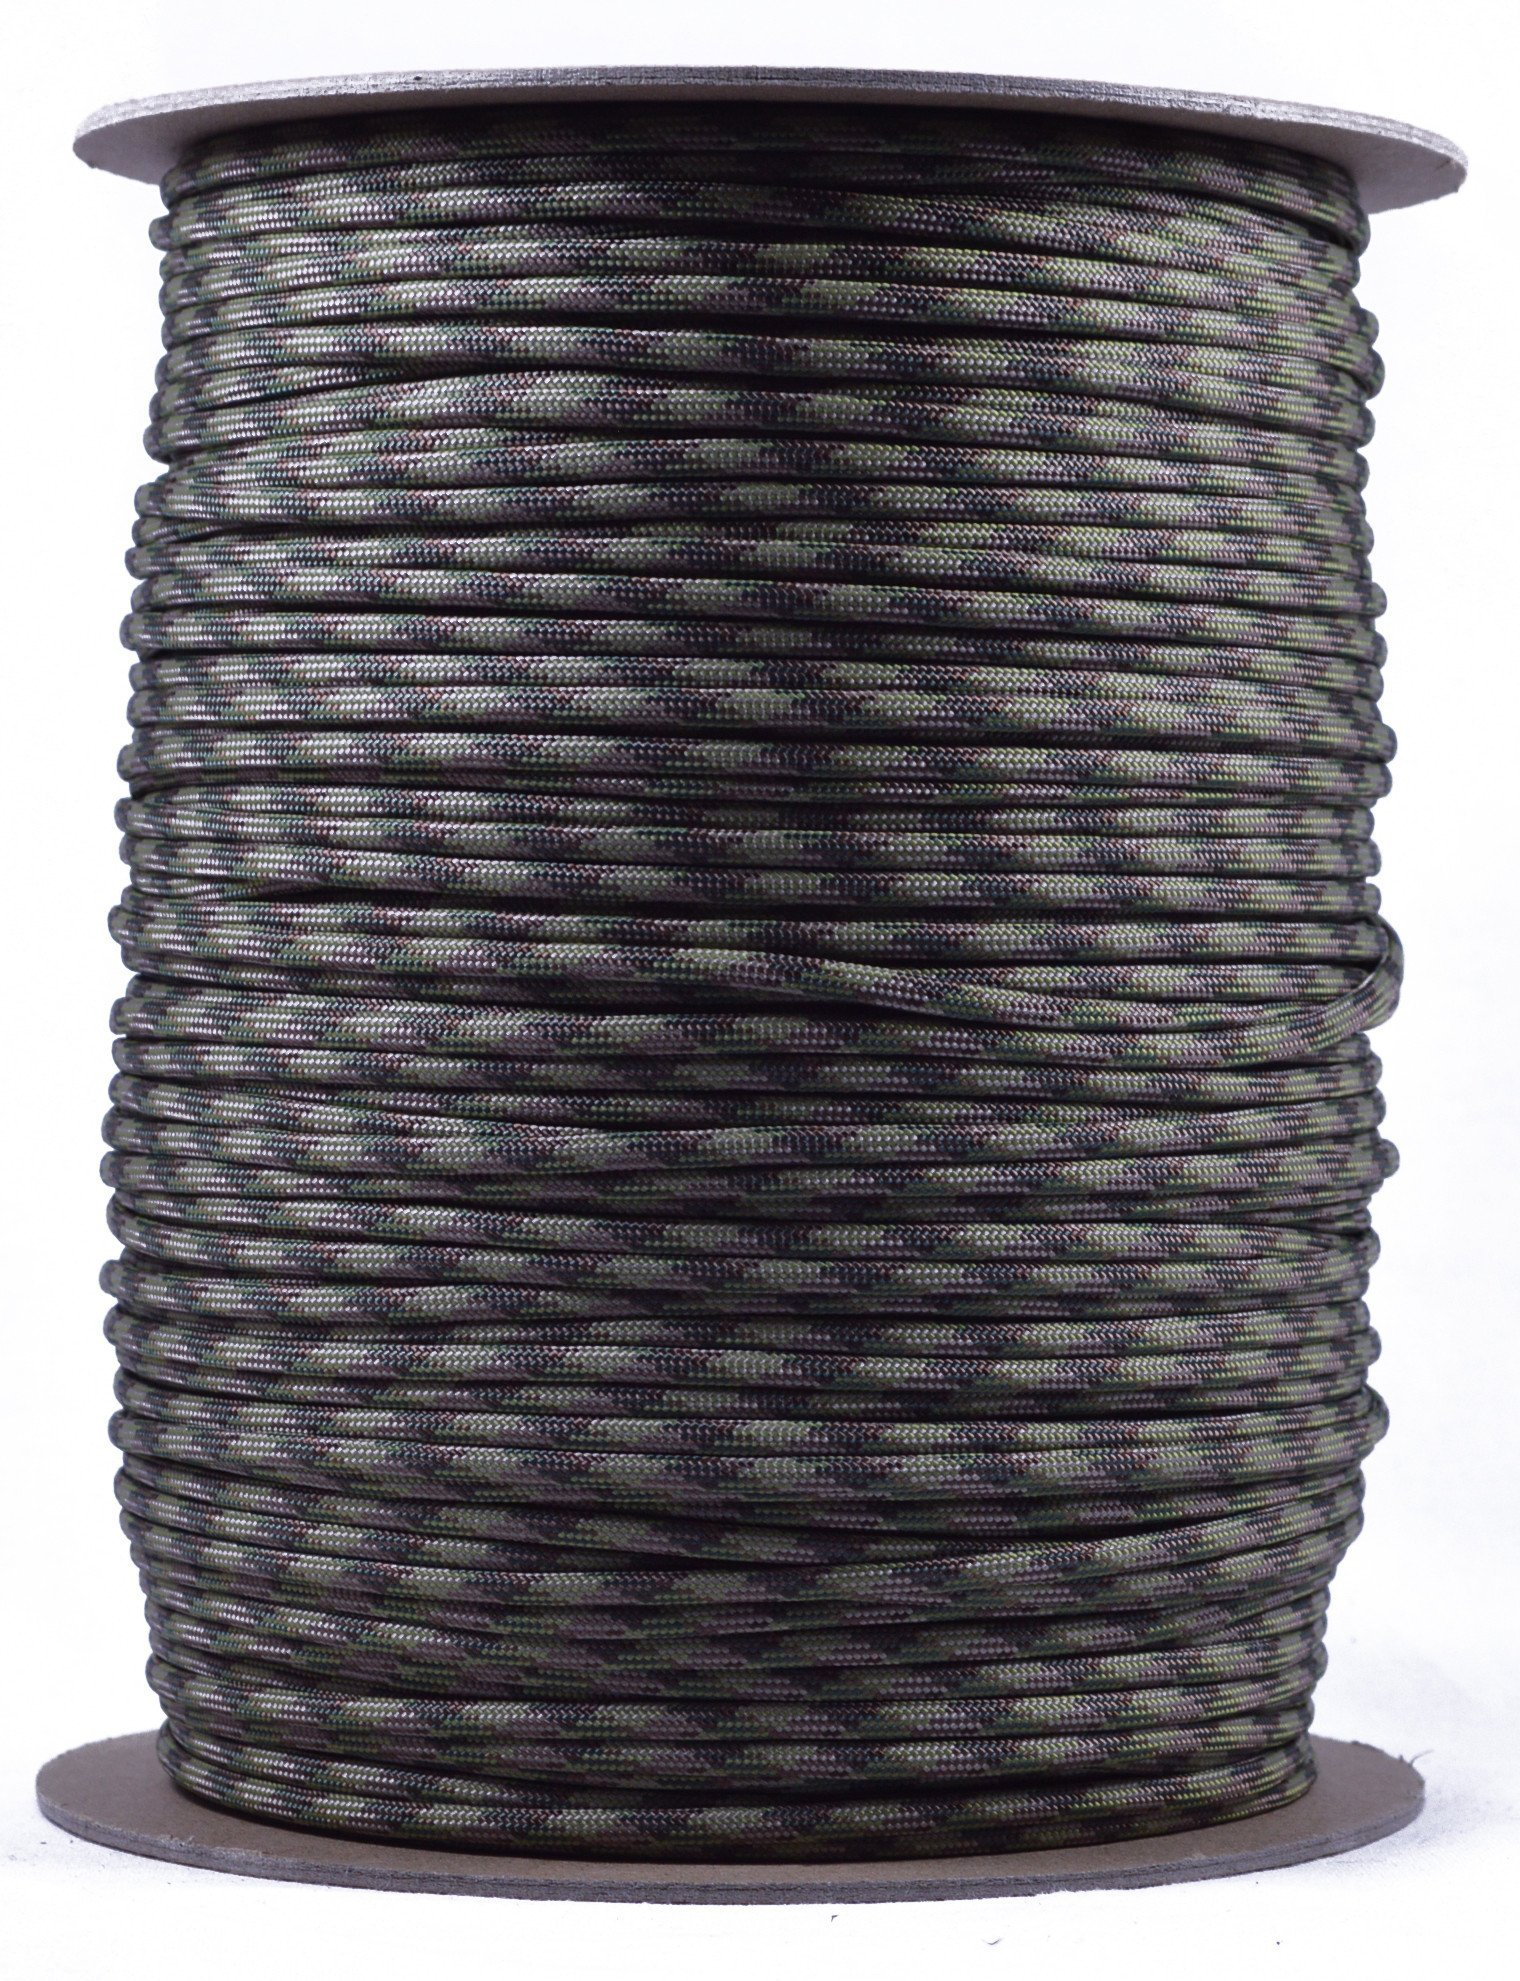 BoredParacord Brand Paracord (1000 ft. Spool) - Multicam